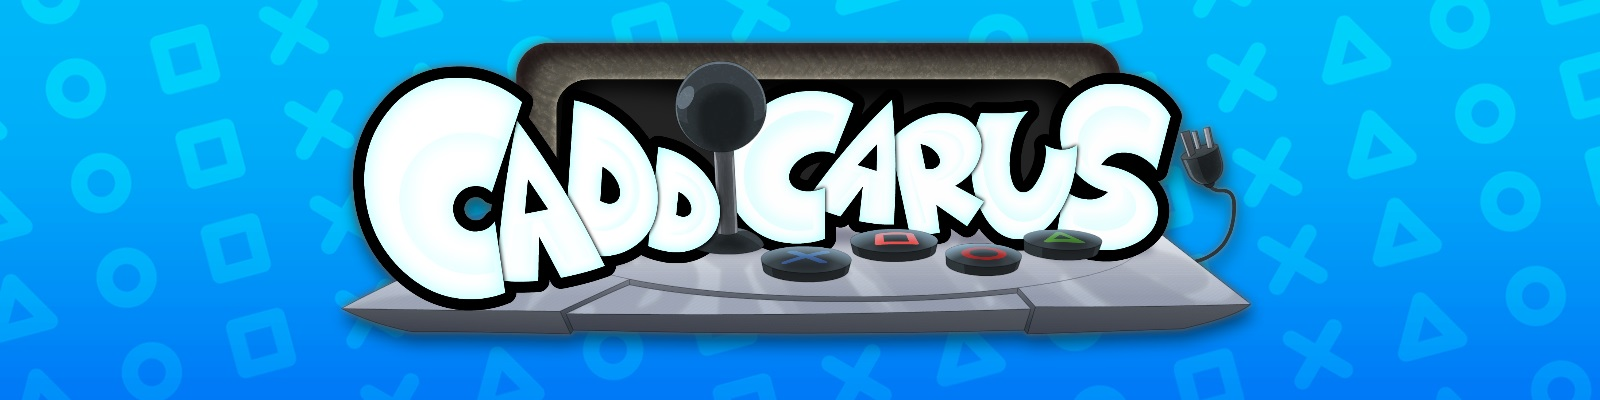 Caddicarus is creating a stupid YouTube show AND Let's Plays! | Patreon